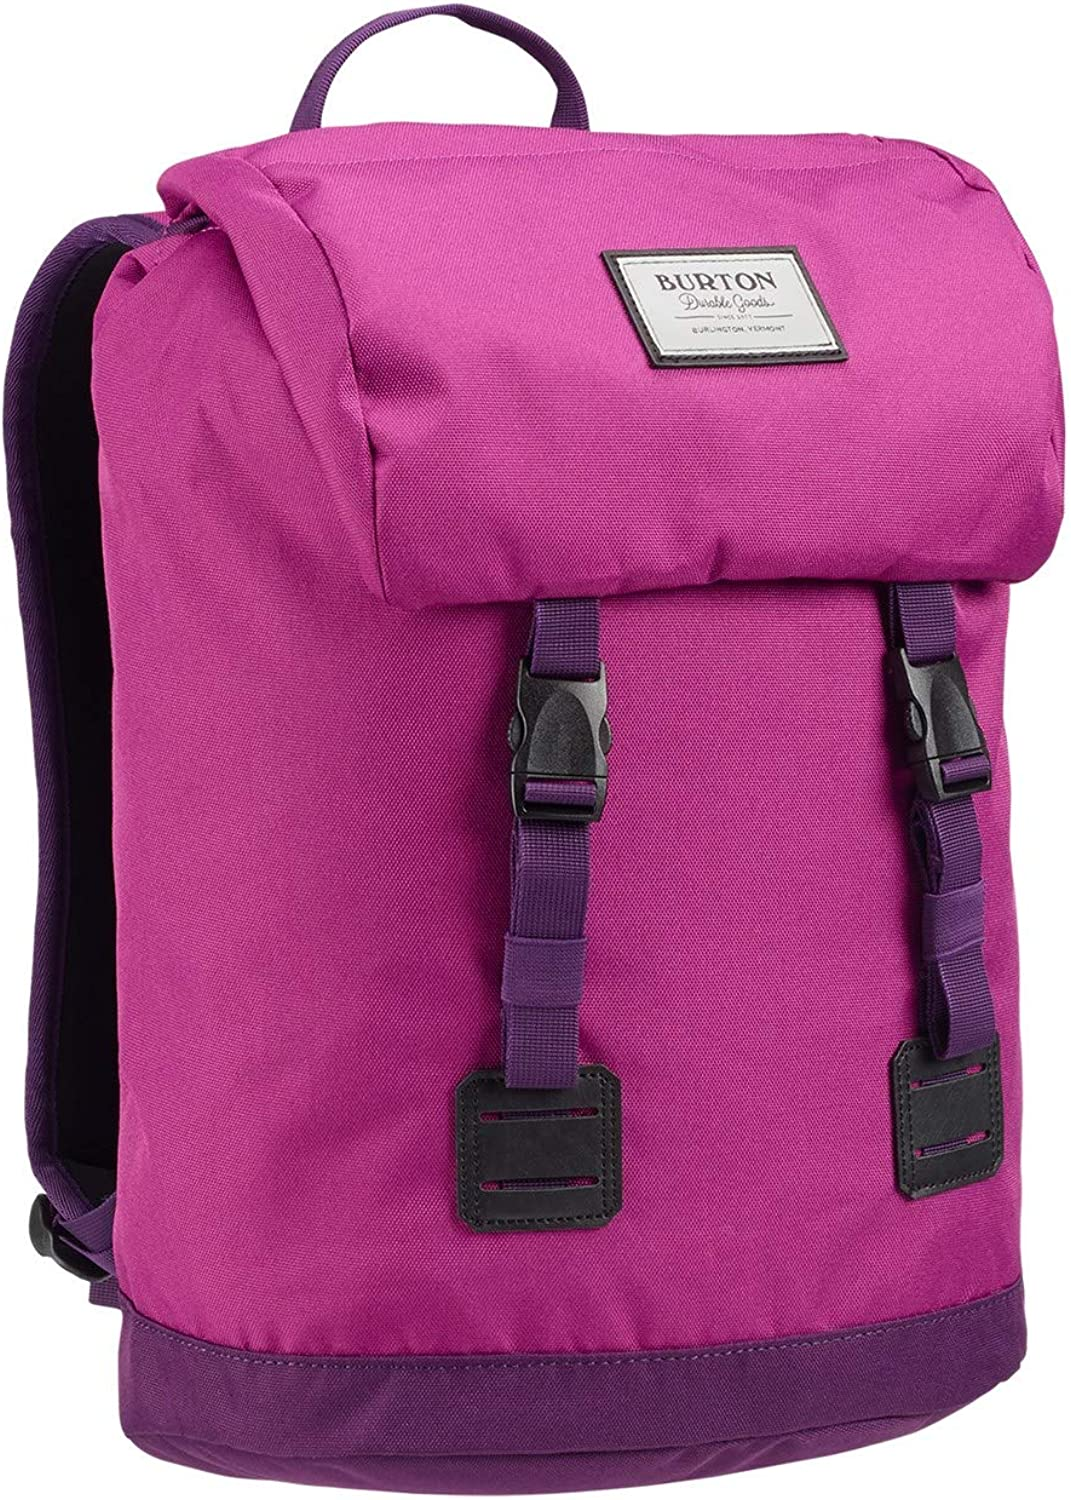 Burton Youth Tinder Backpack - Grapeseed